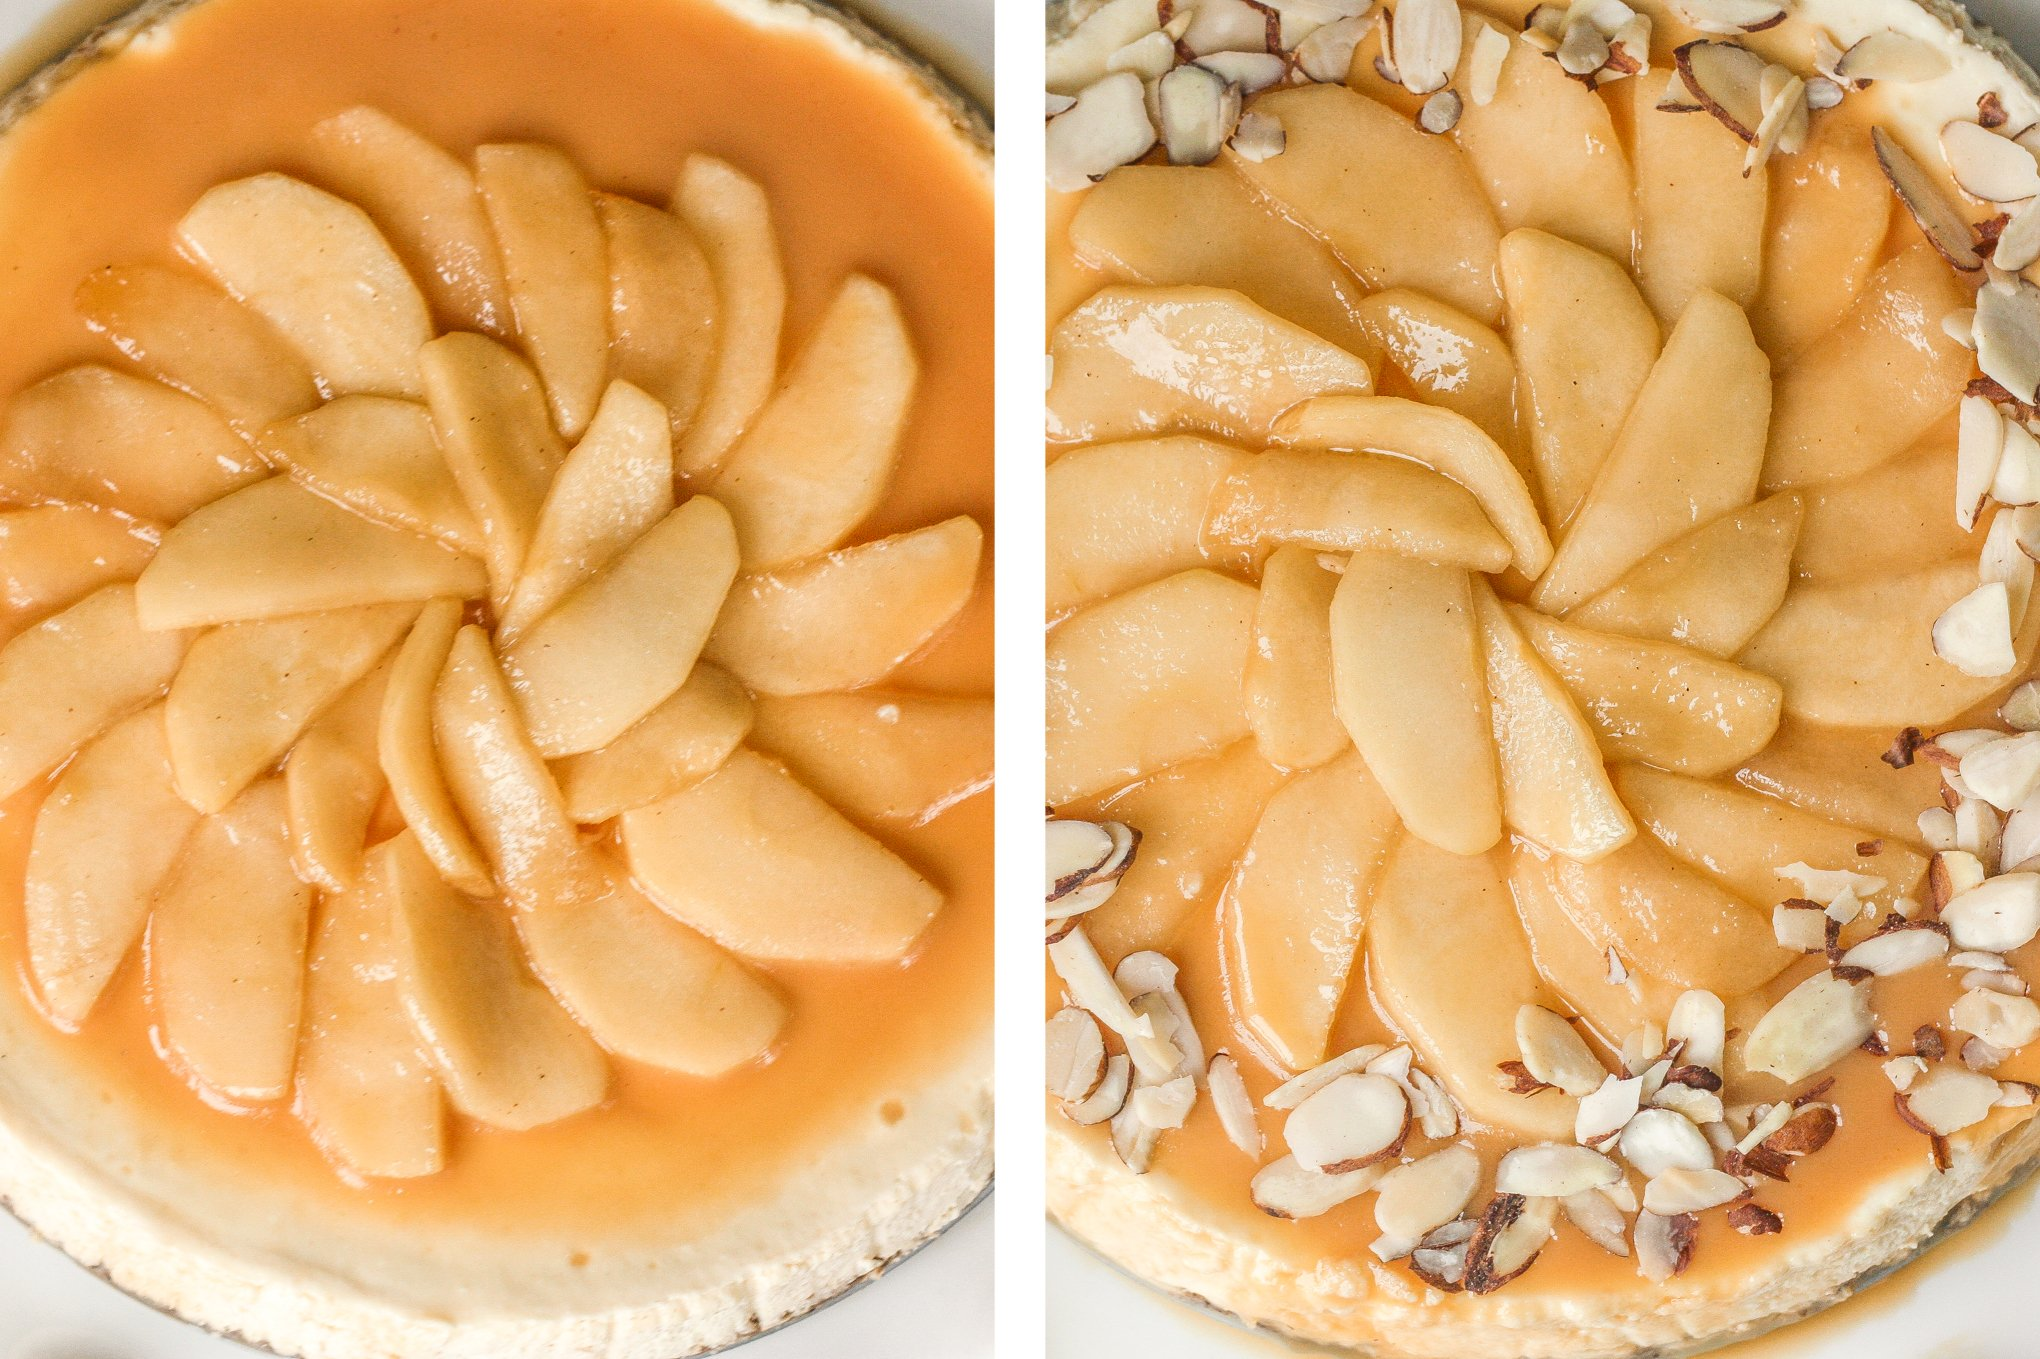 Decadent and light, homemade healthier caramel apple fall cheesecake is made with a graham cracker crust, topped with caramel apples and caramel sauce. It's fall heaven. | aheadofthyme.com